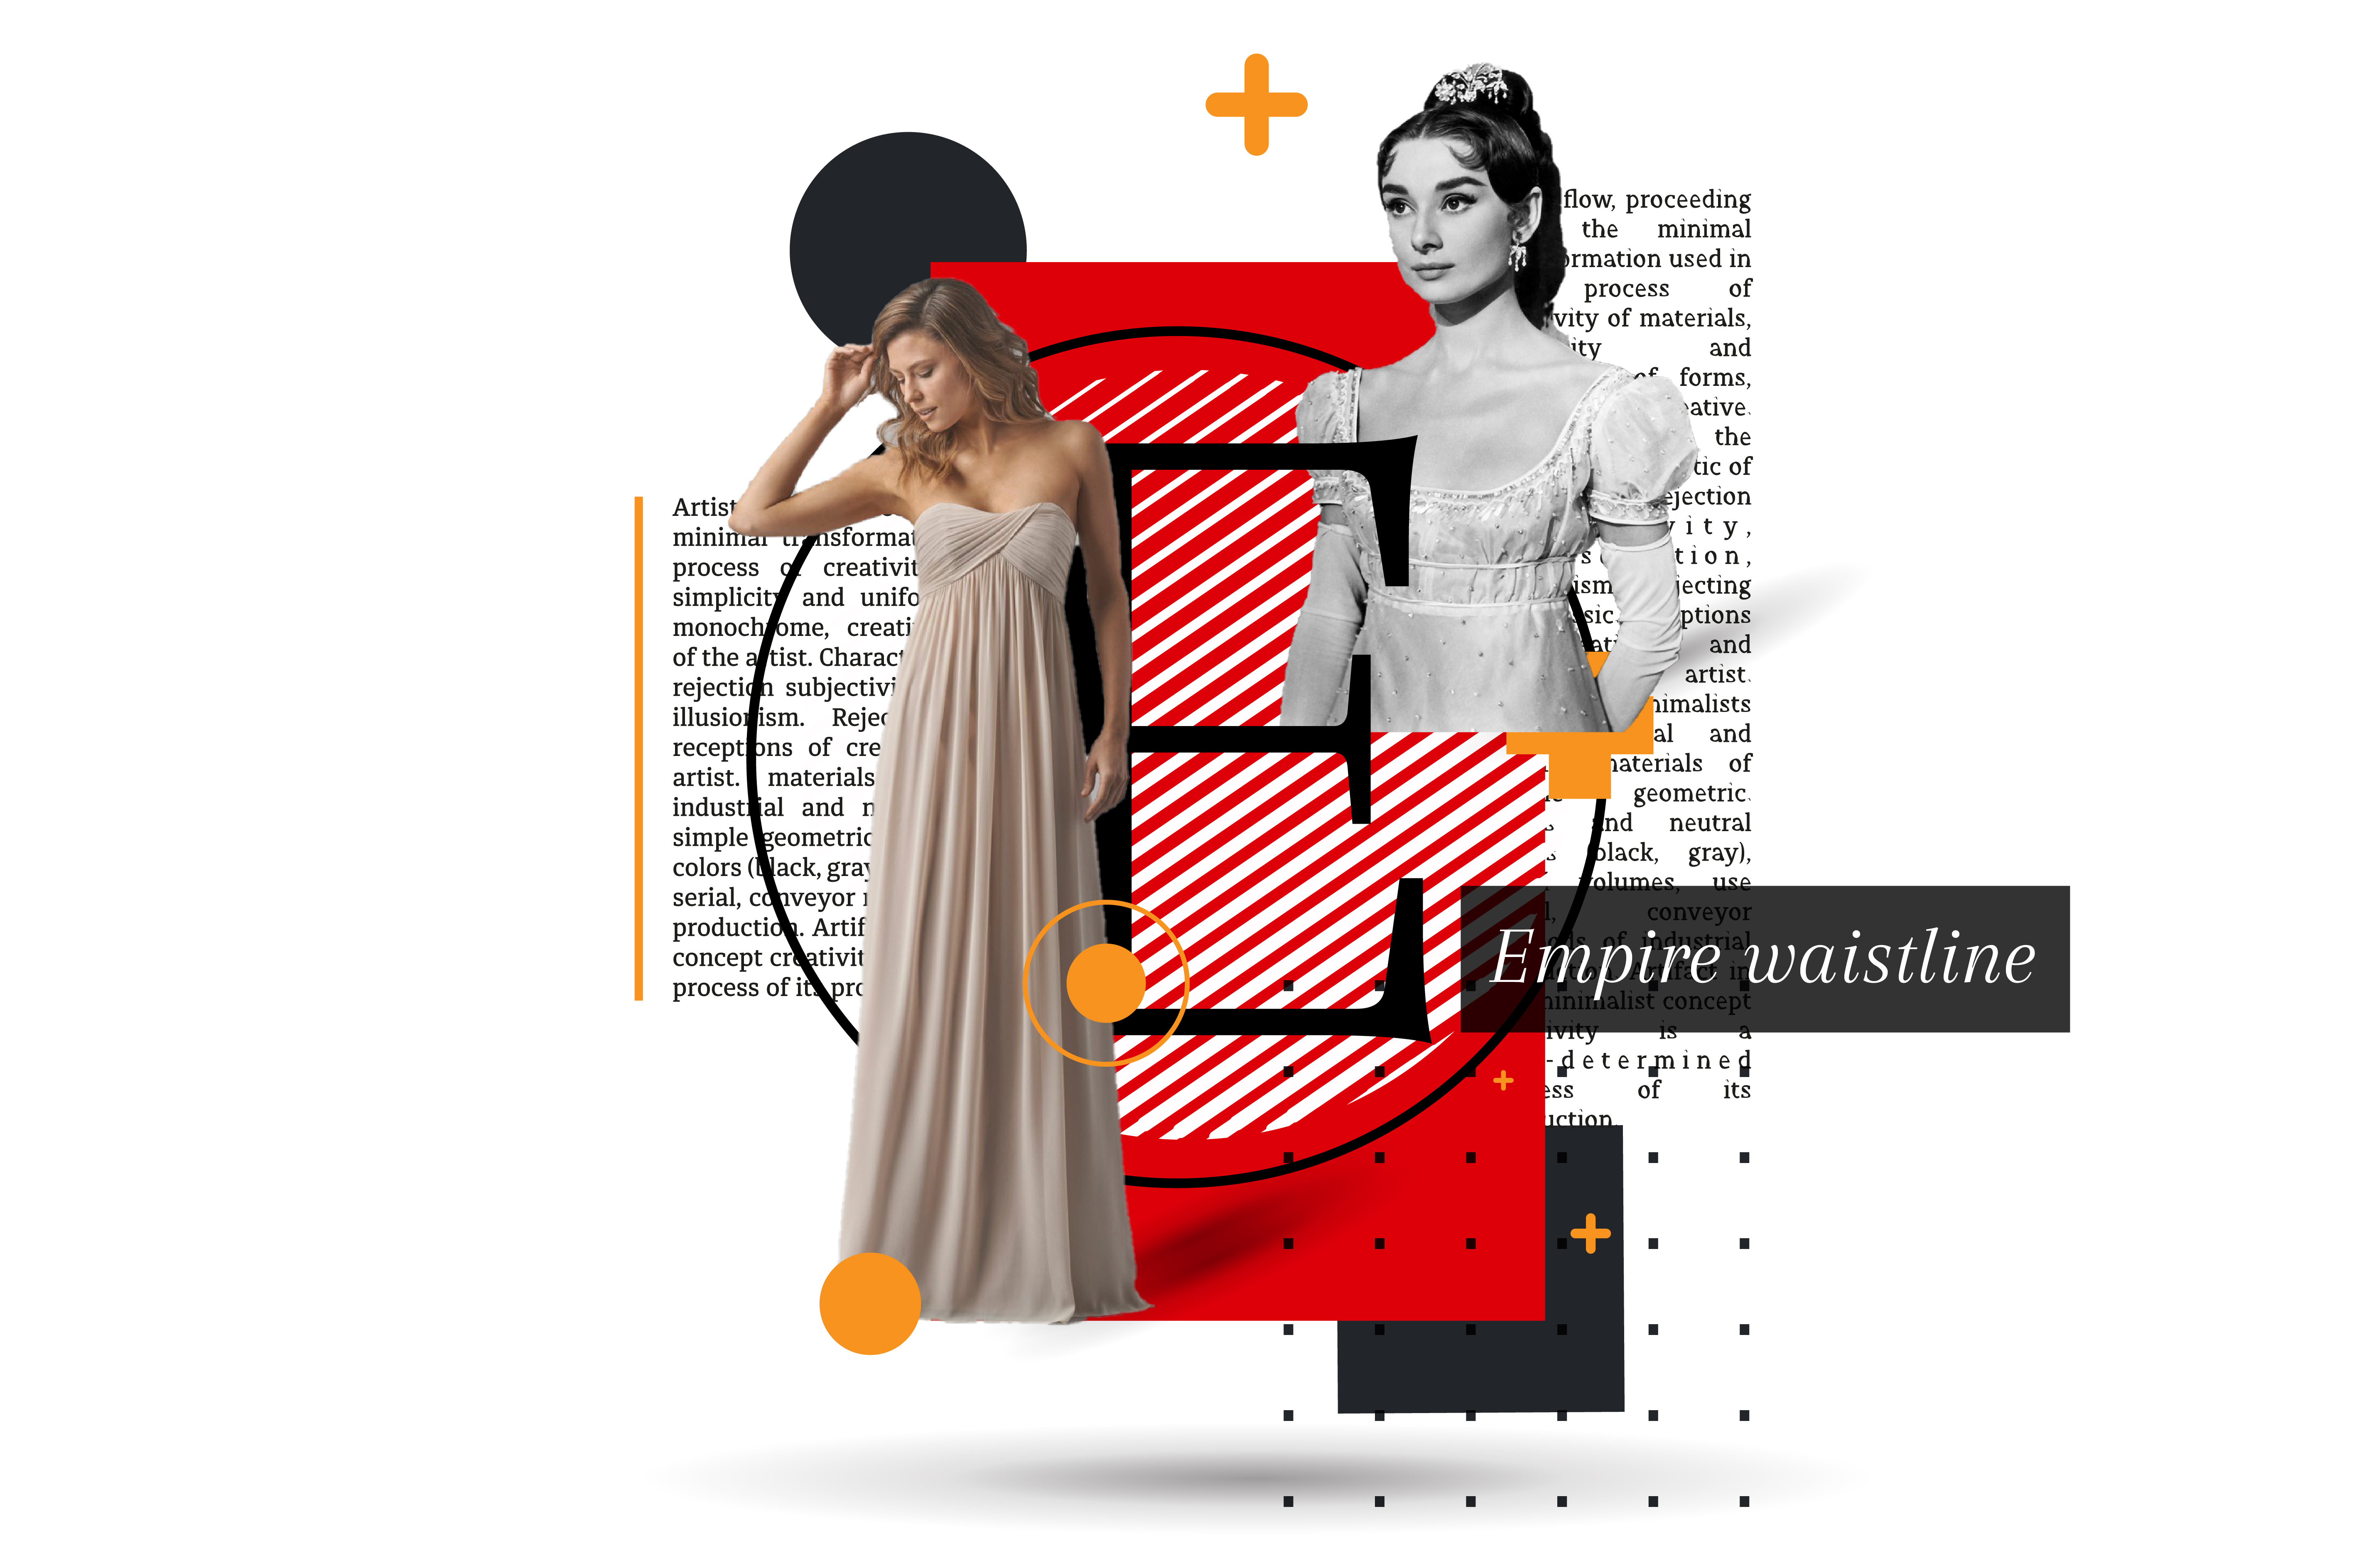 EMPIRE WAIST: Styling with empire waist silhouettes